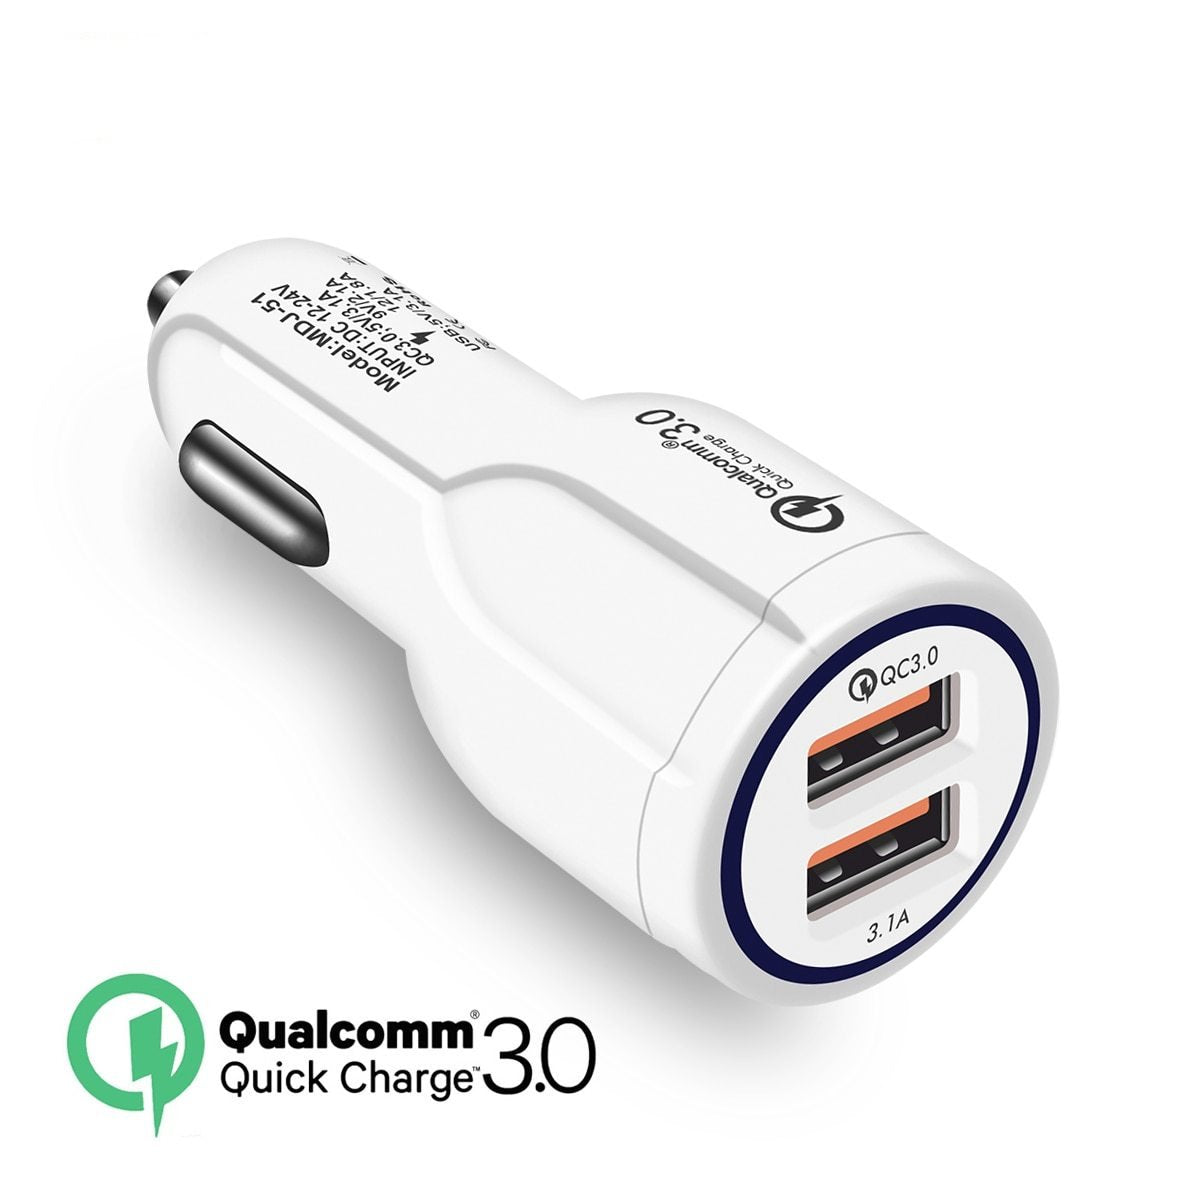 Quick Charge 3.0 Converter